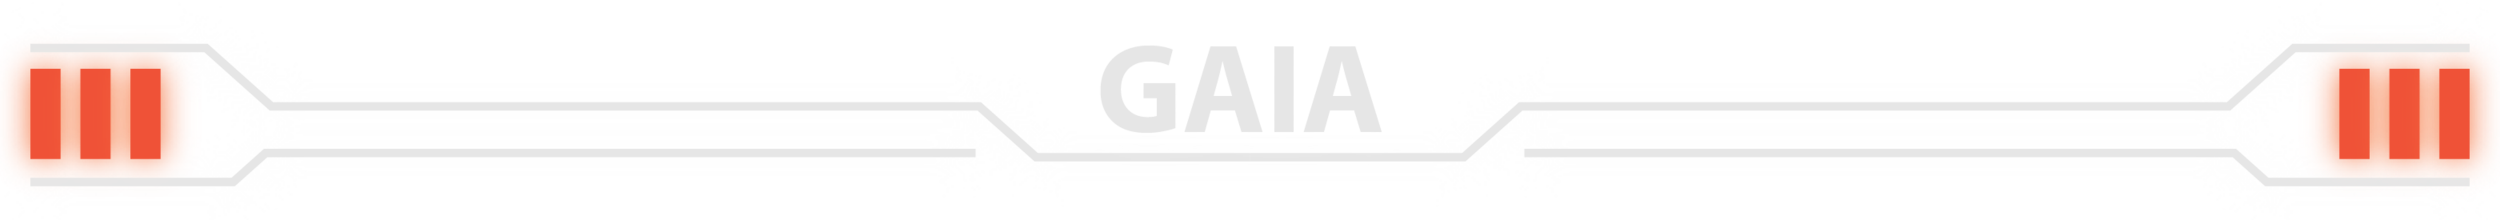 Gaia title-02.png